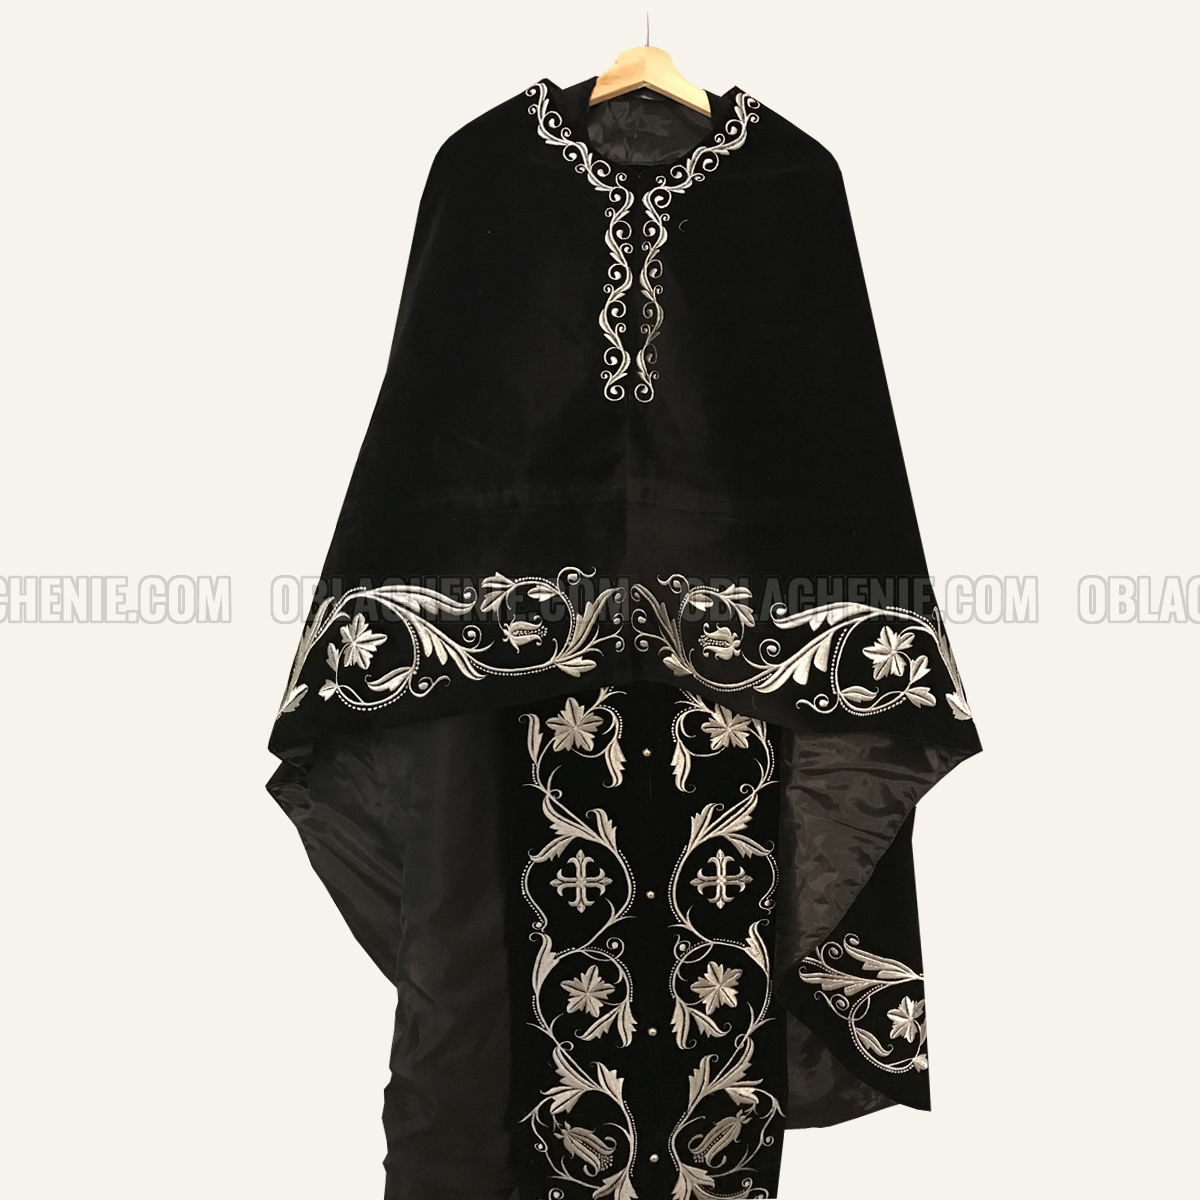 Embroidered priest's vestments 10228